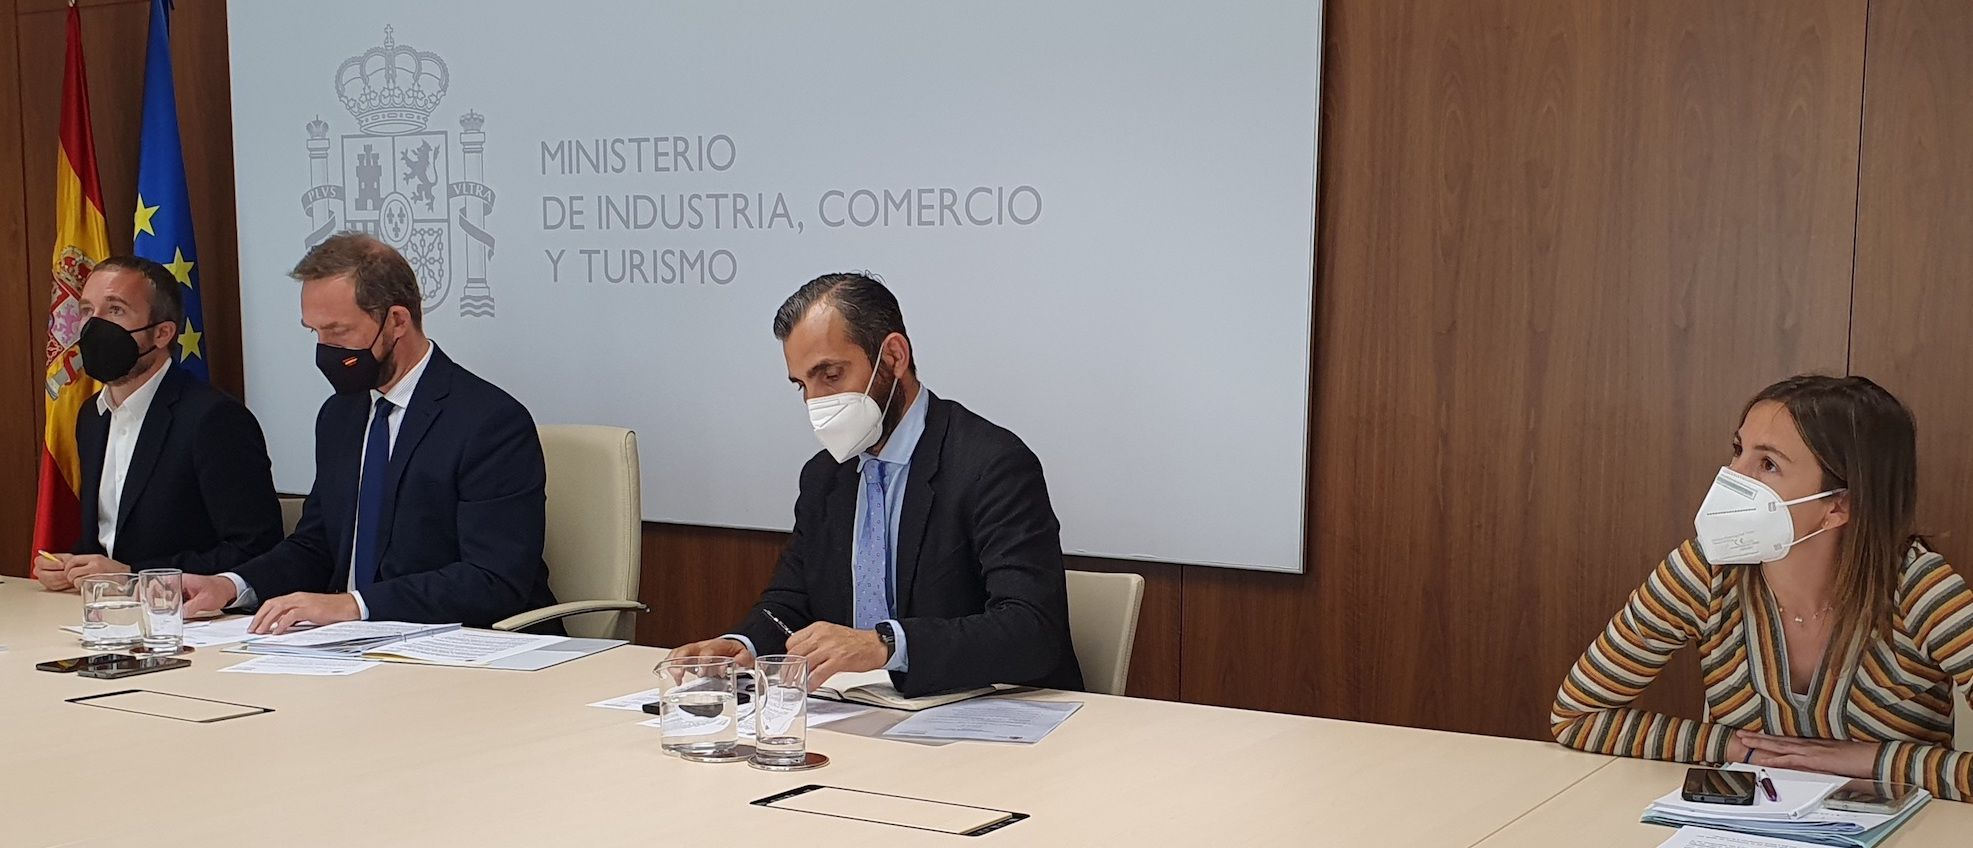 ComisionSectorial1.jpg